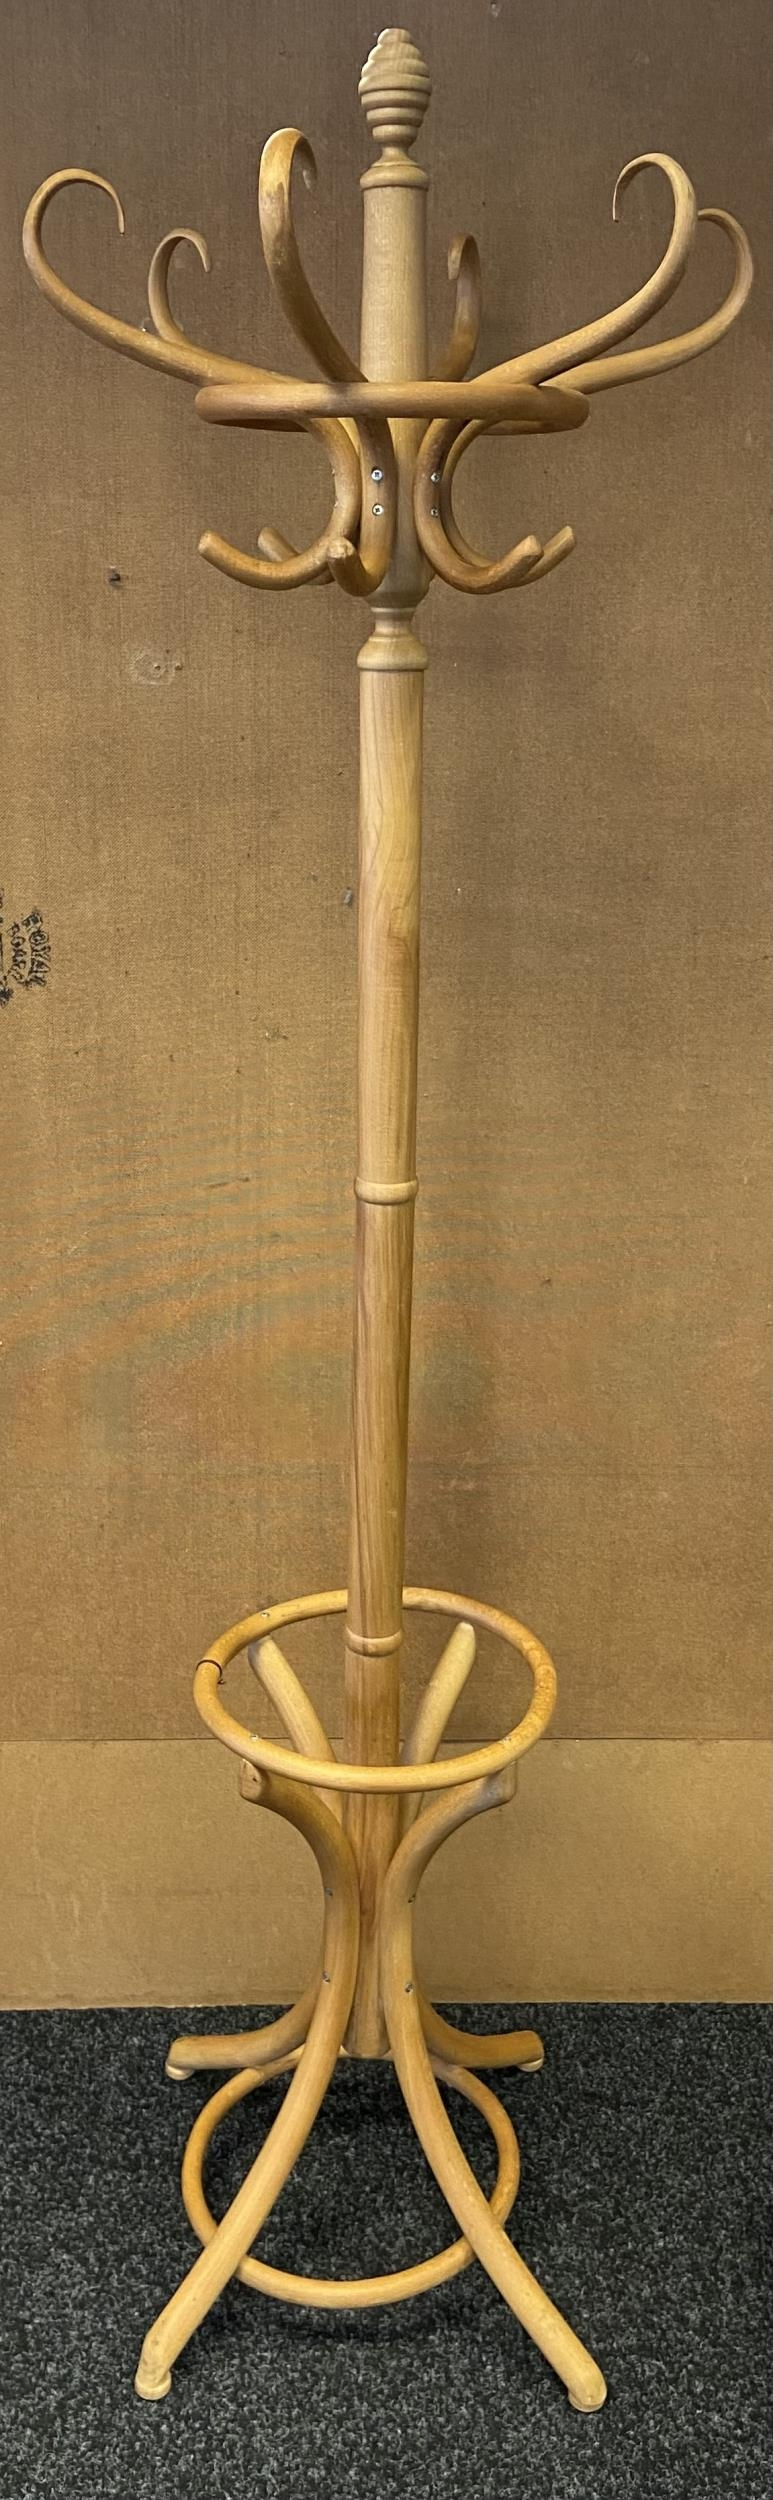 A Lightwood bentwood coat stand.